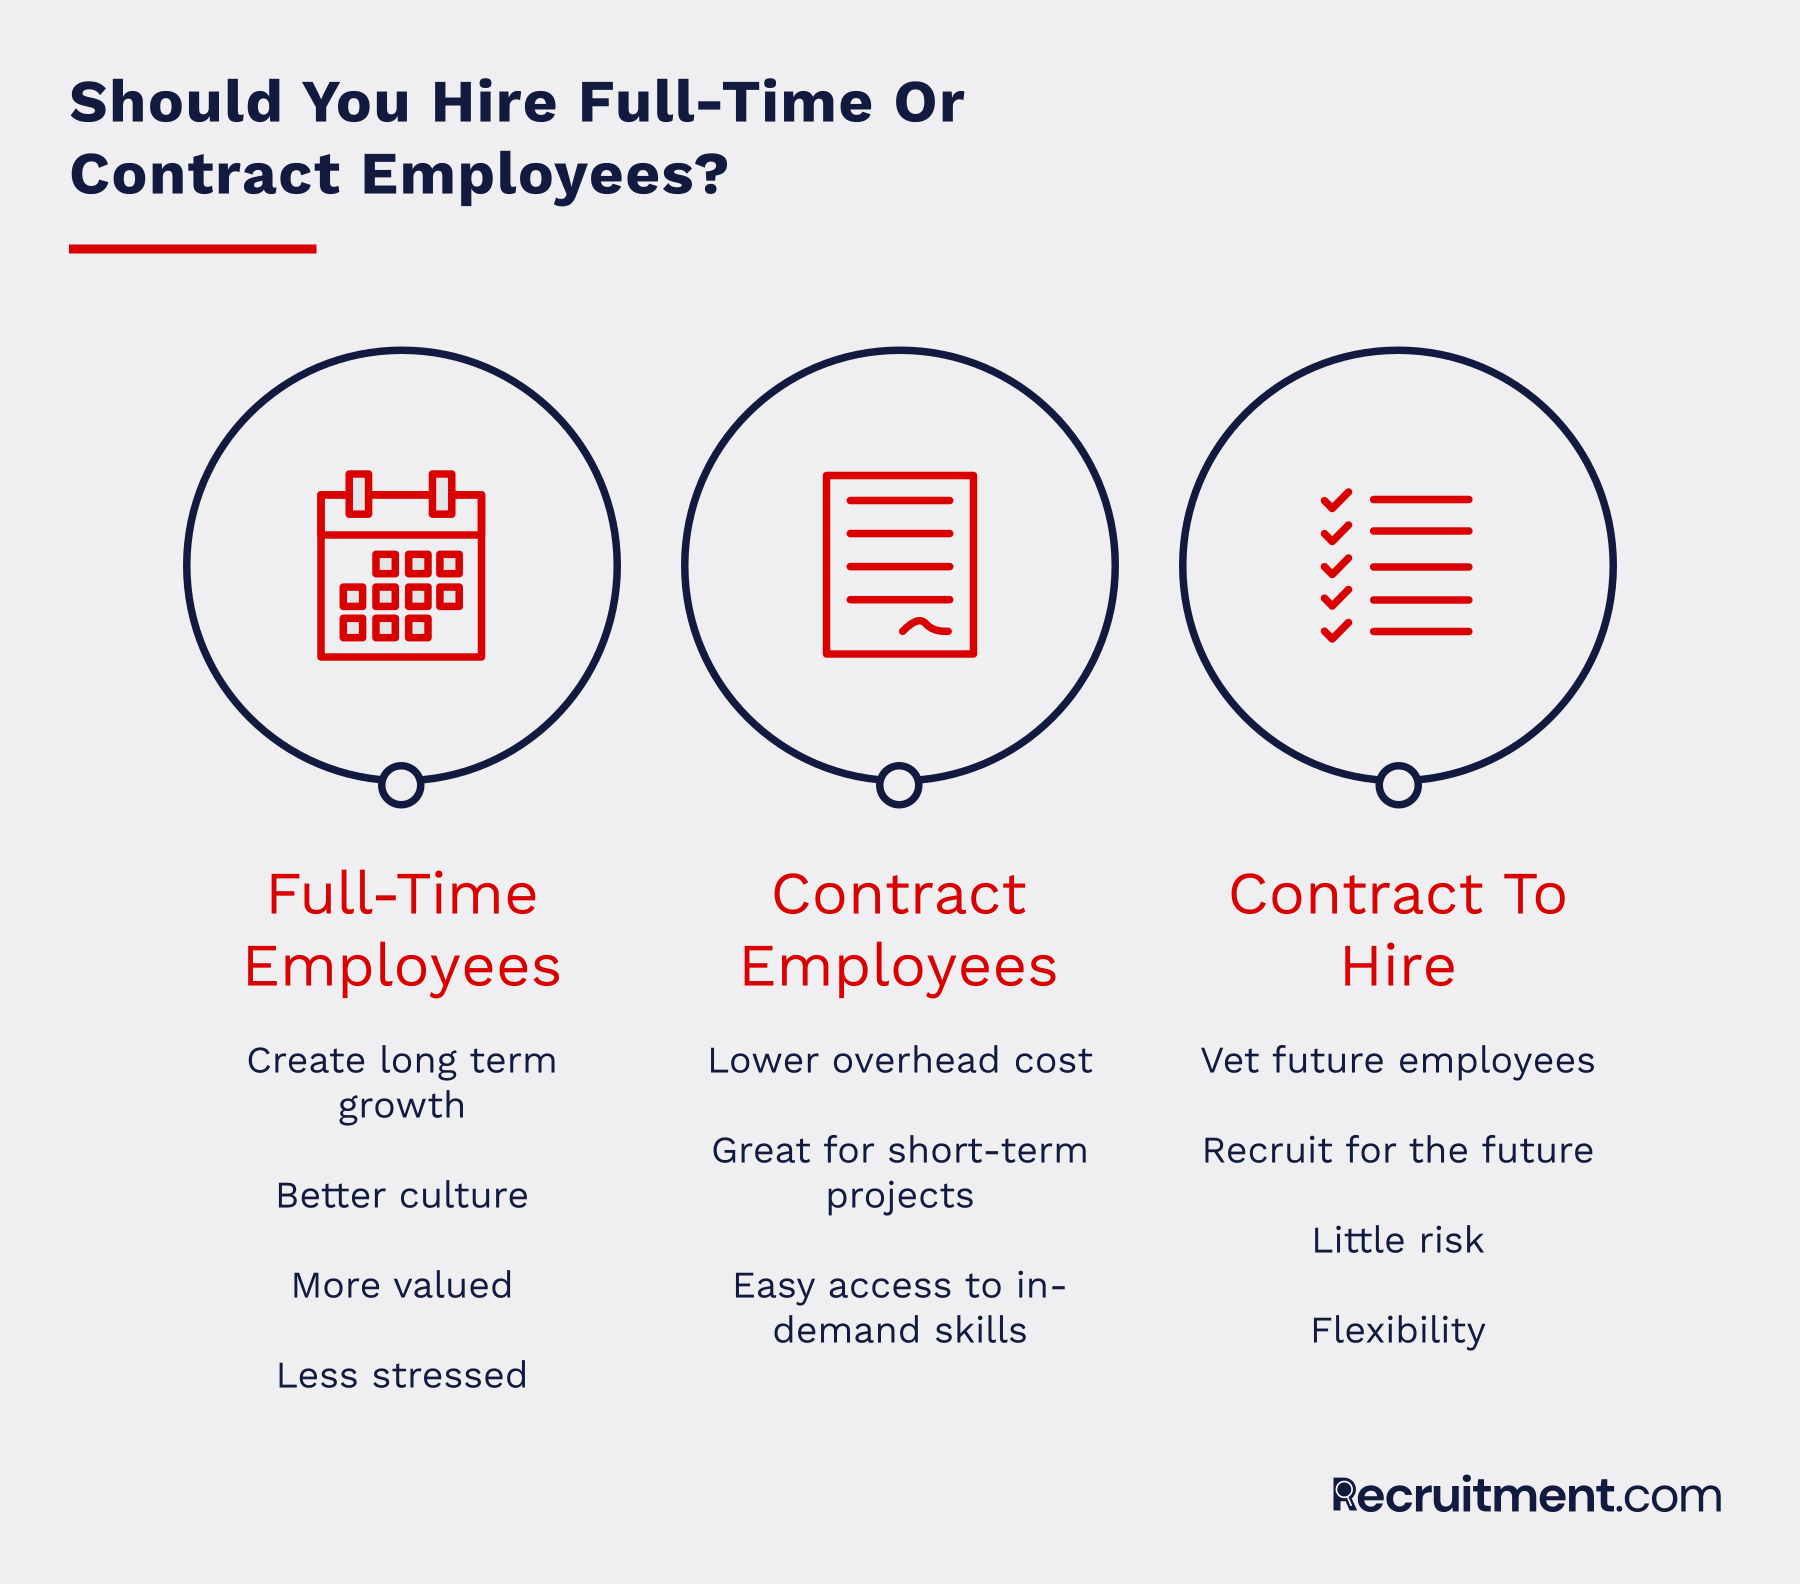 Should you hire full-time or contract employees?